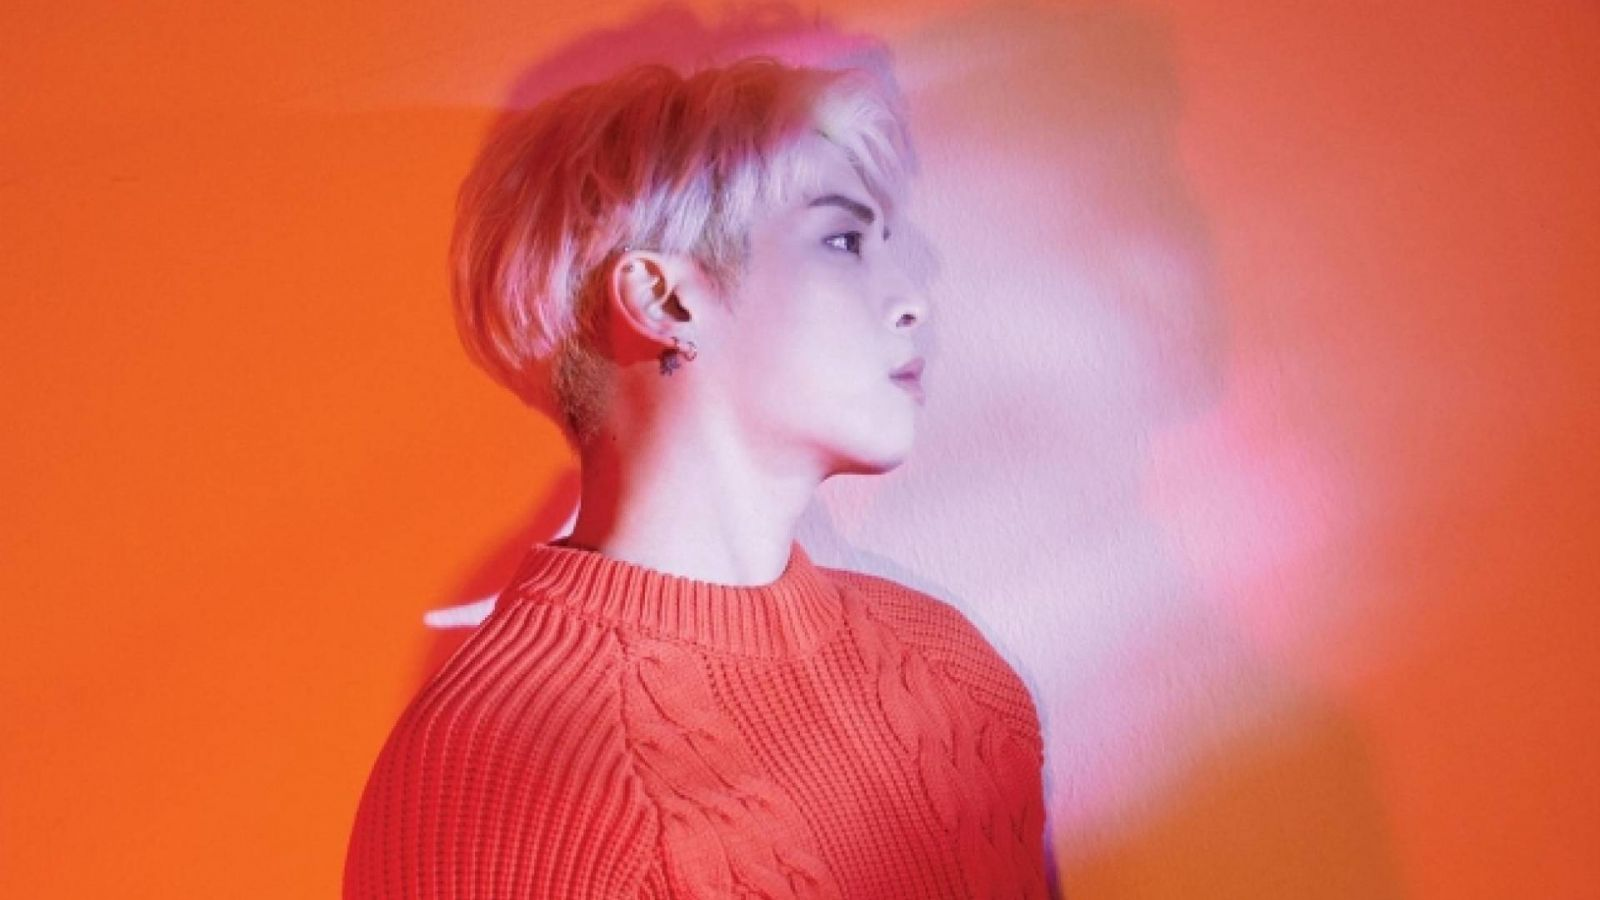 SM Released Jonghyun's Final Album